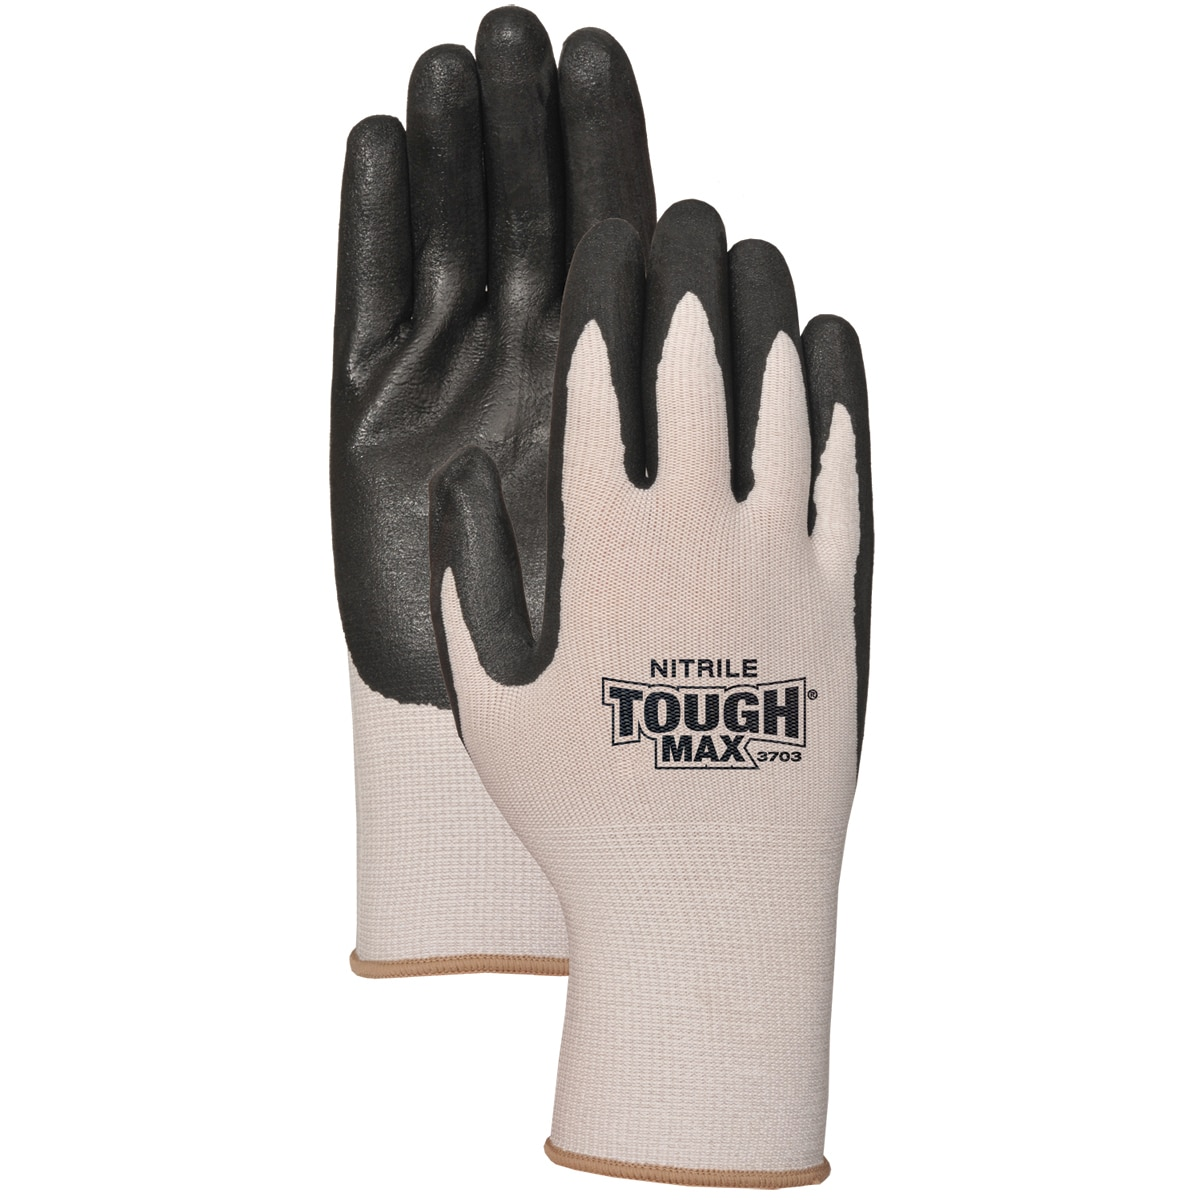 Atlas Glove C3703L Nitrile With Cool Max Gloves (Medium)